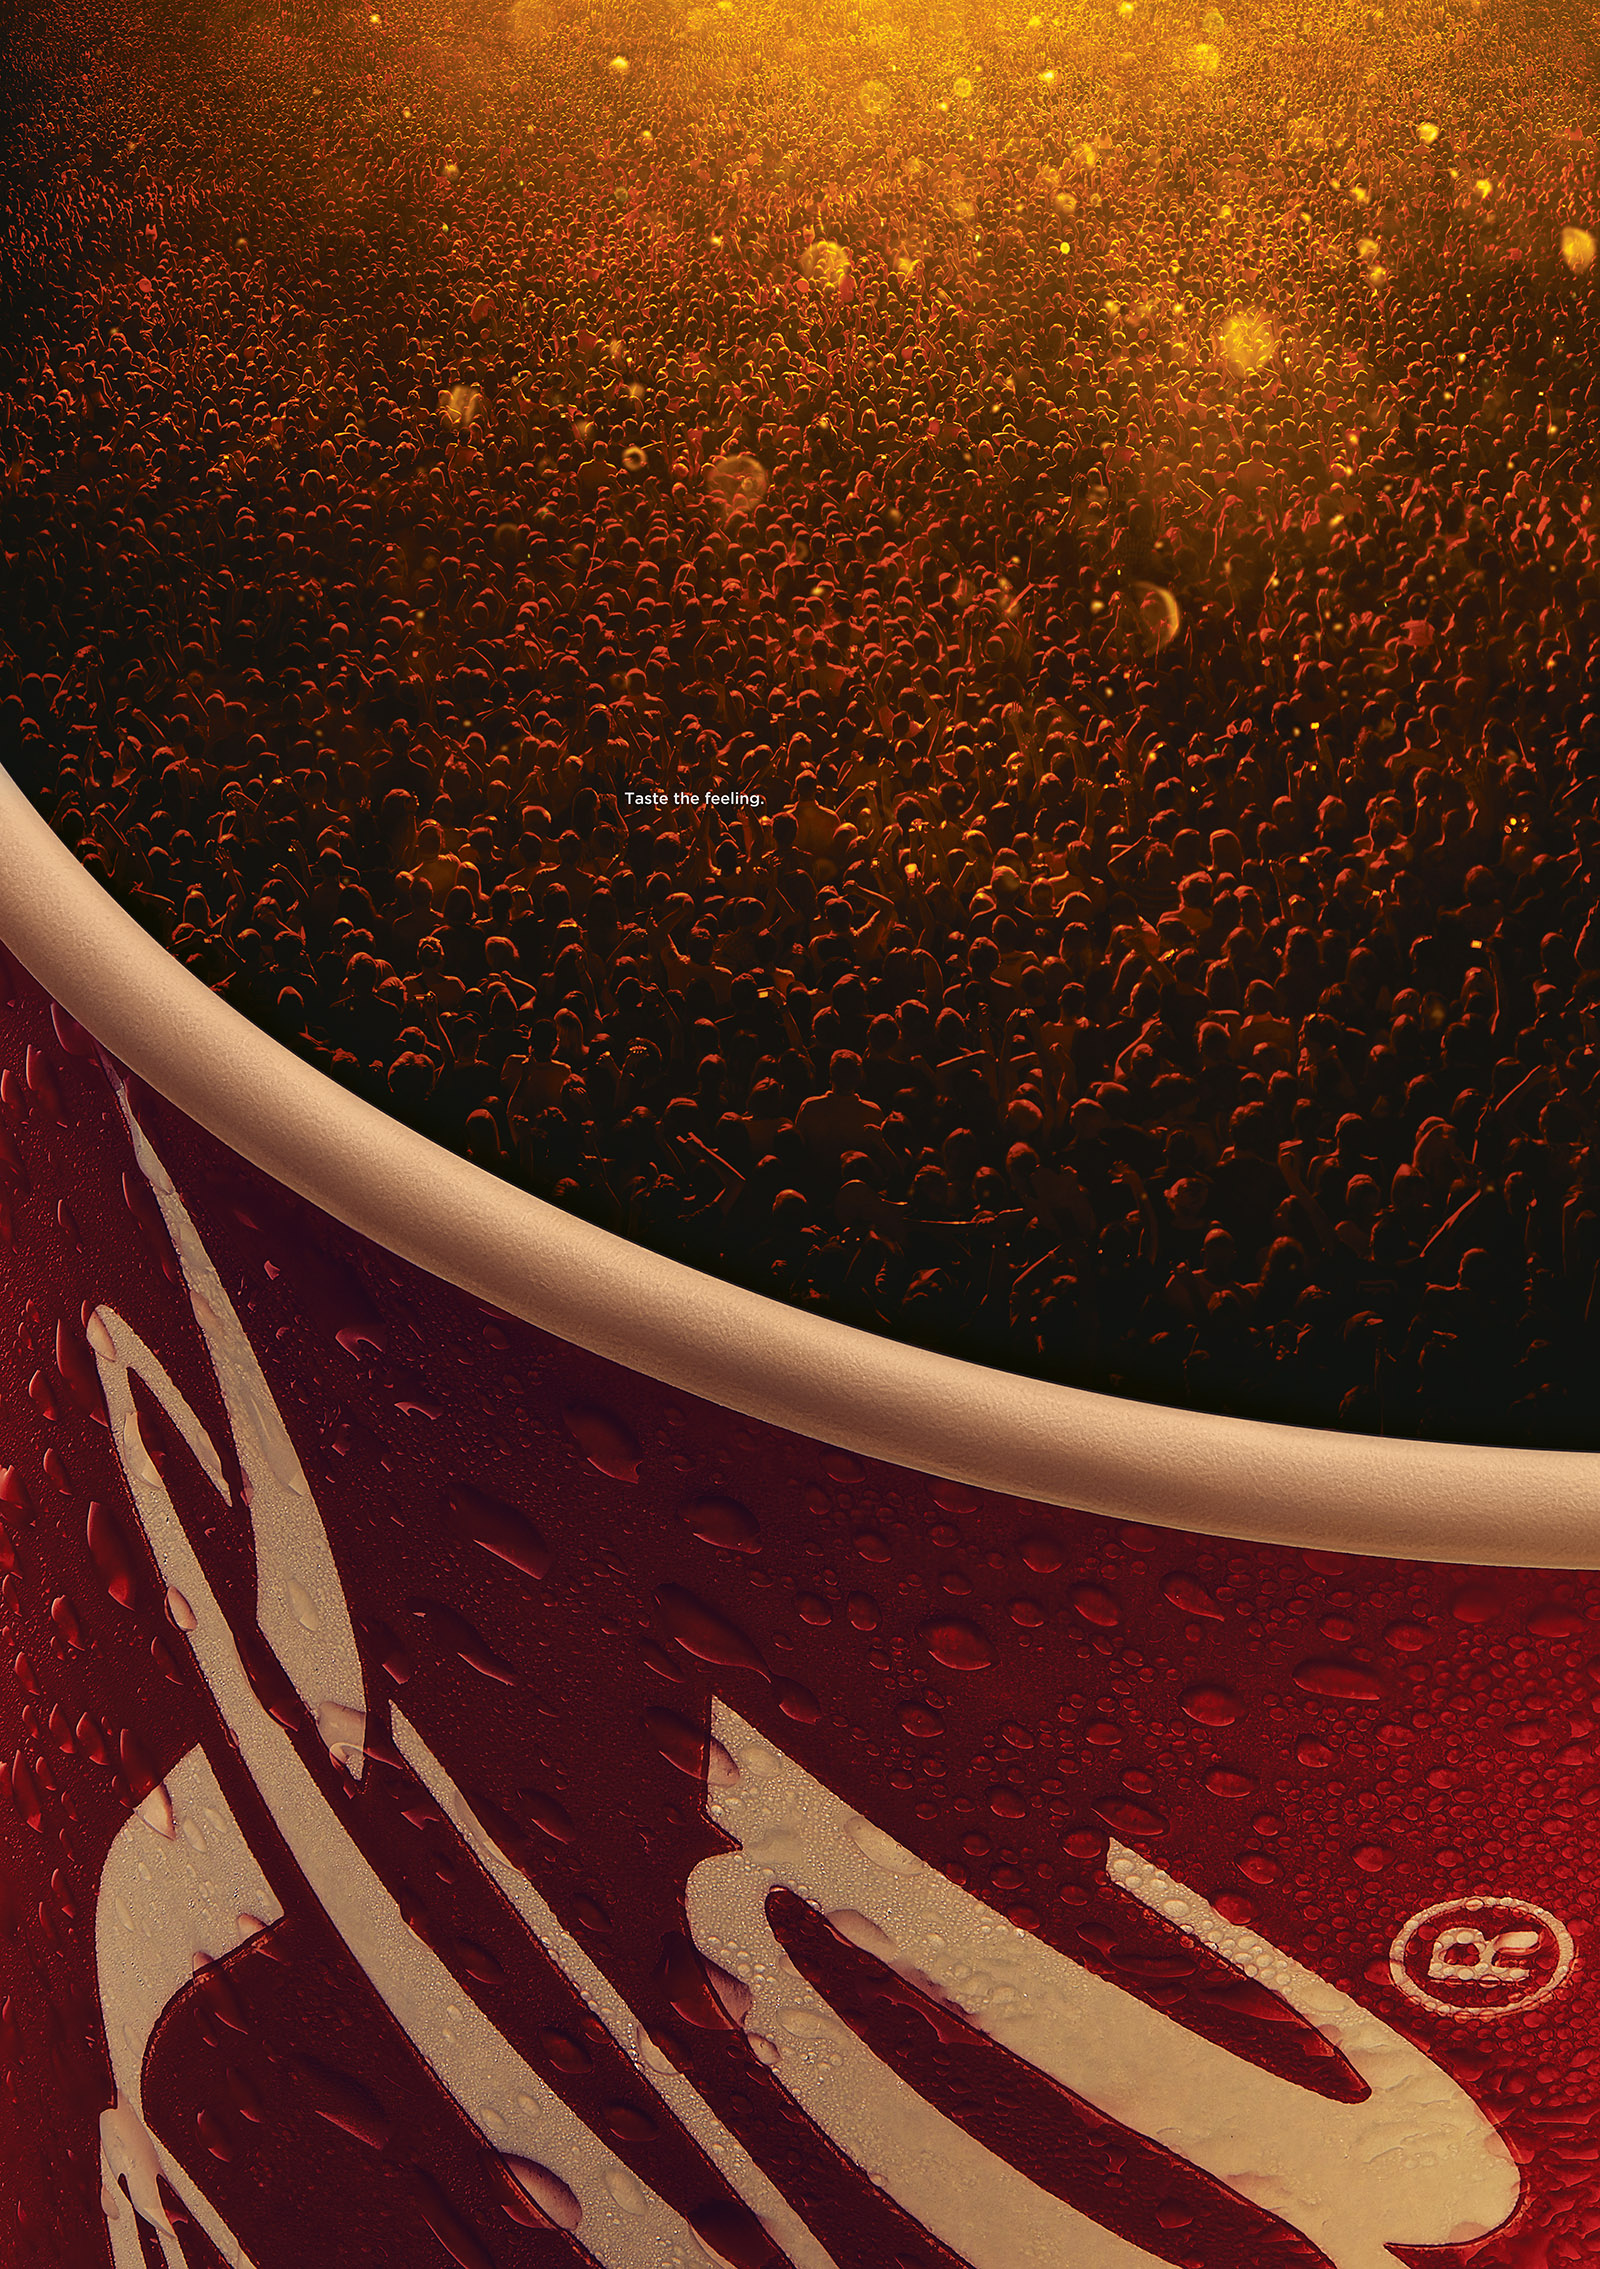 Coke Bubbles - Cup